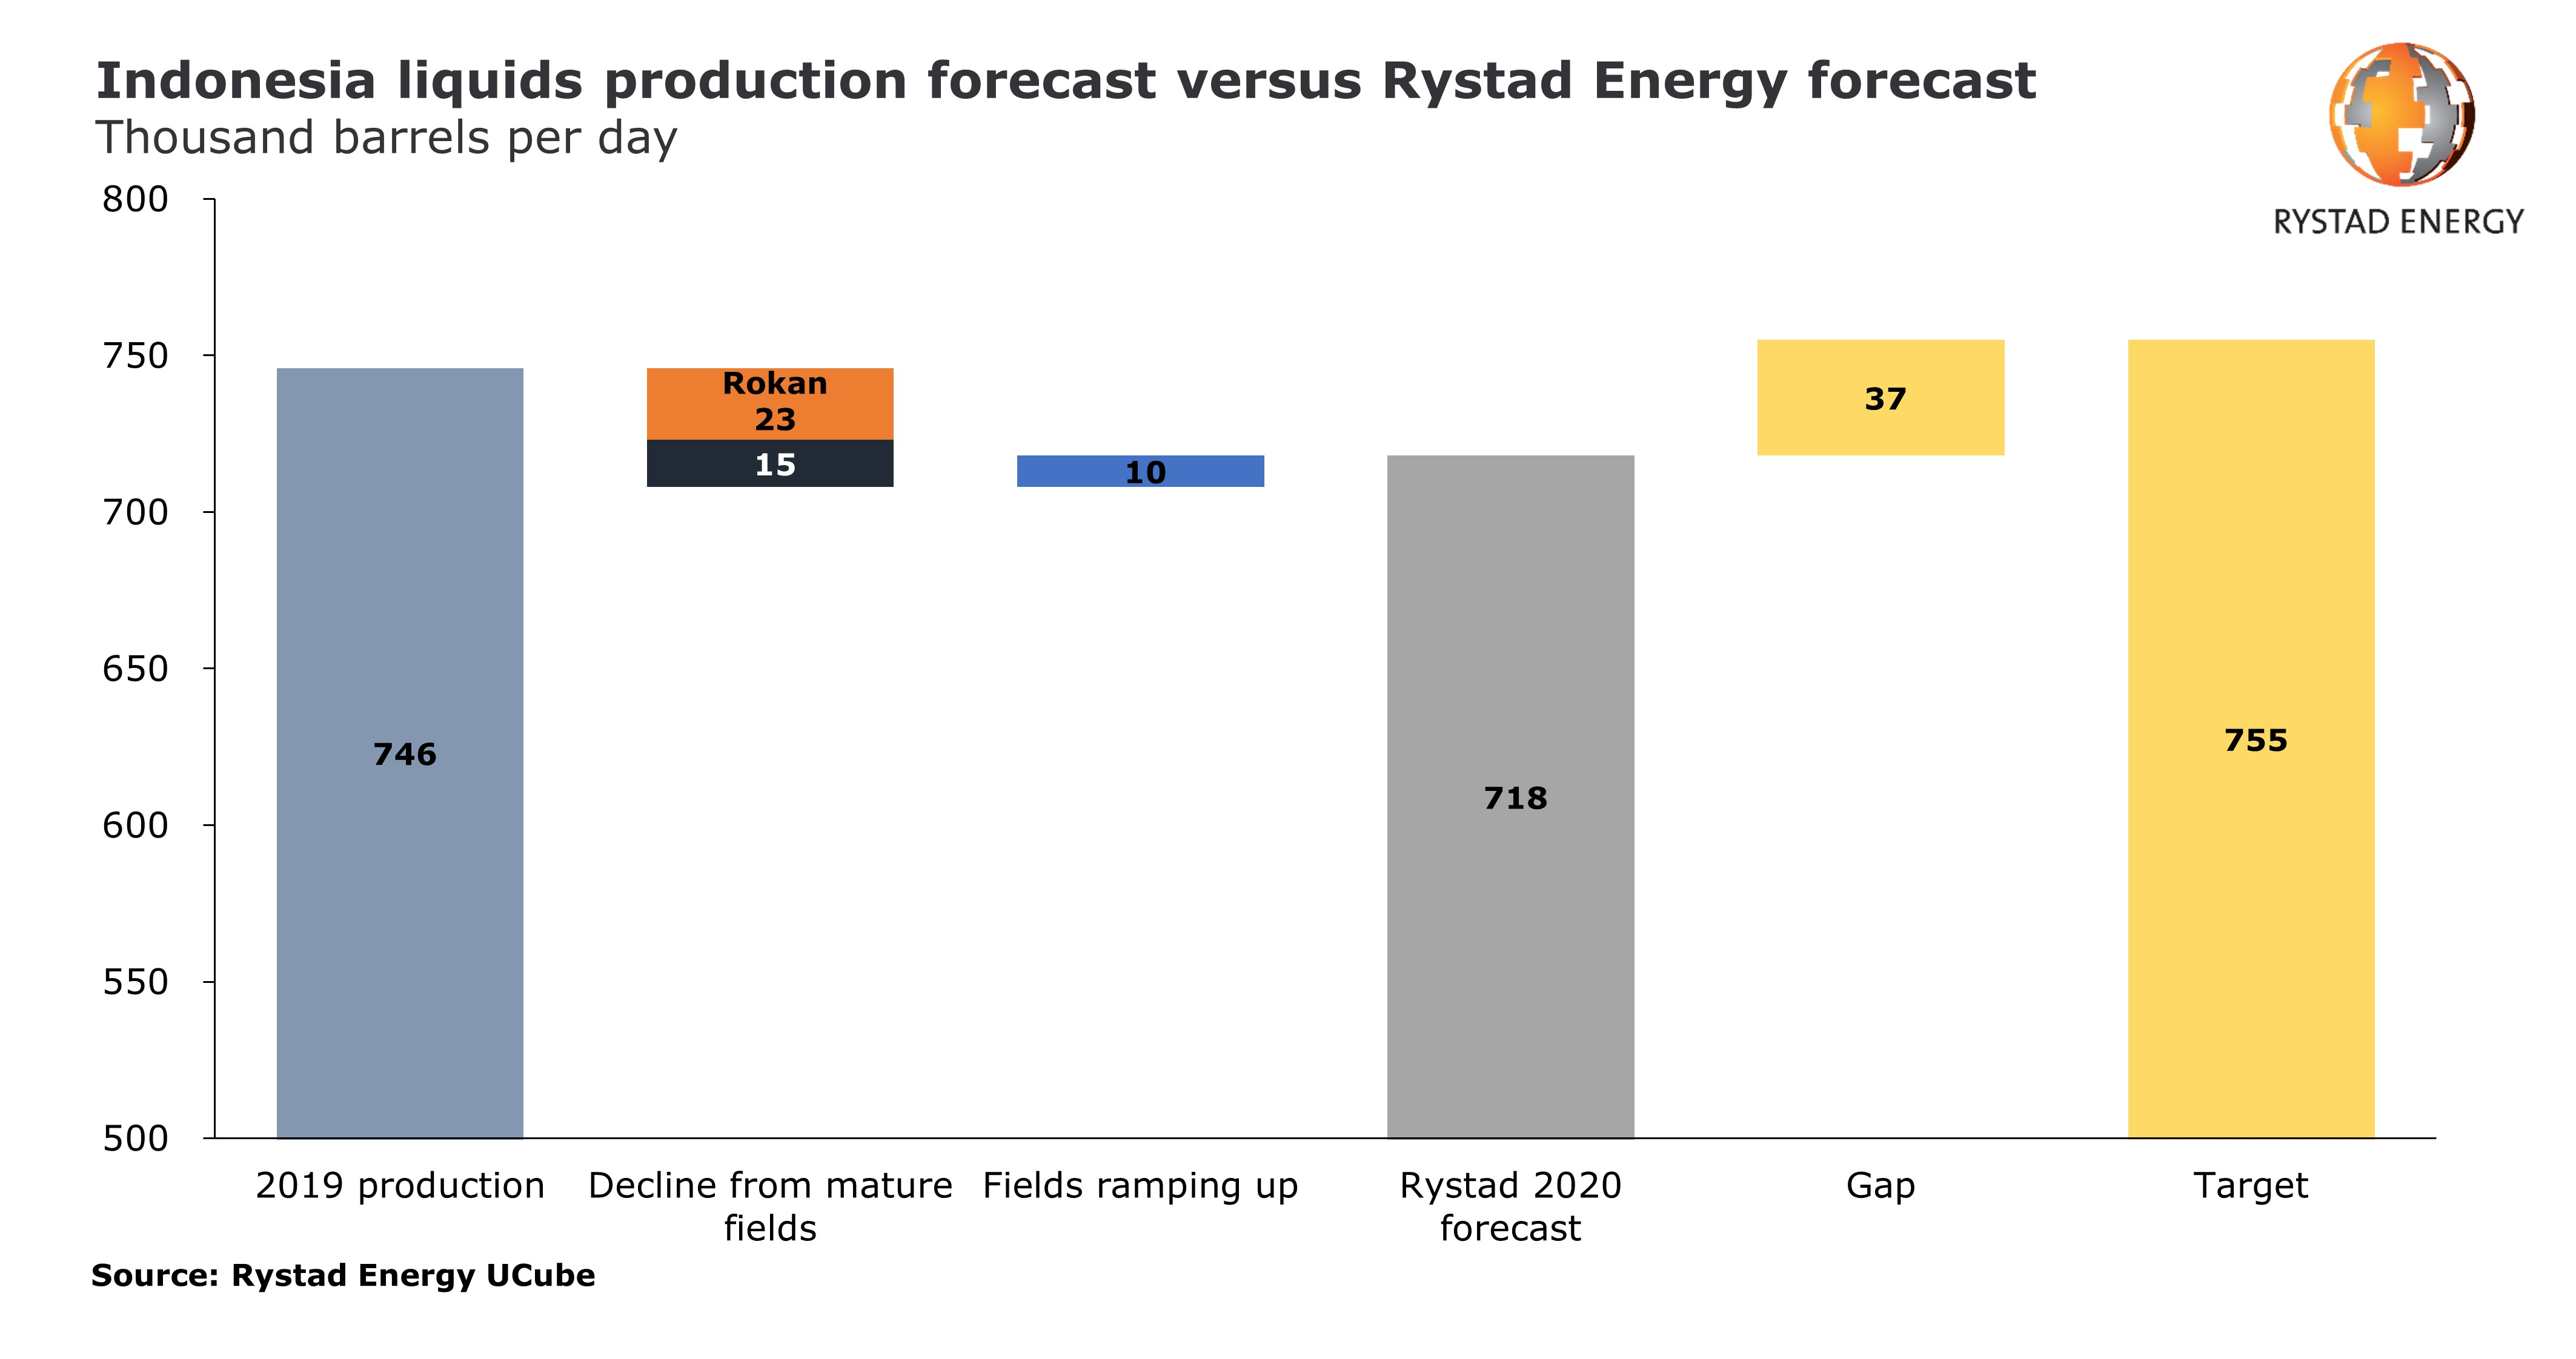 Bar chart showing Indonesia liquids production forecast versus Rystad Energy forecast in thousand barrels per day